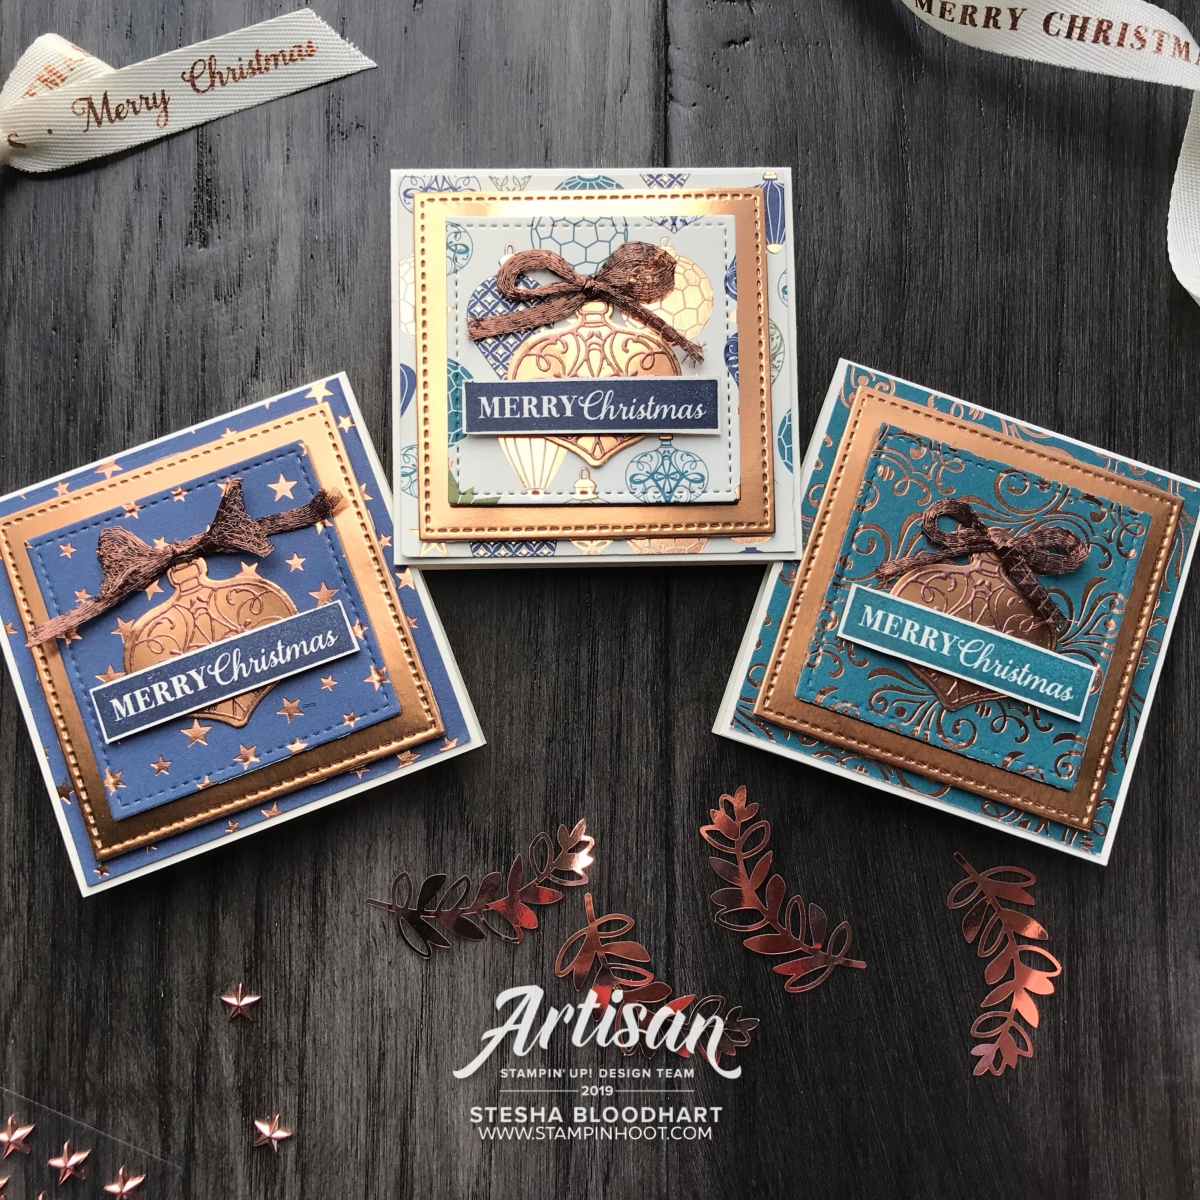 Copper Tea Tins from Stampin' Up! 3X3 Card holder created by Stesha Bloodhart, Stampin' Hoot! 2019 Artisan Design Team Member